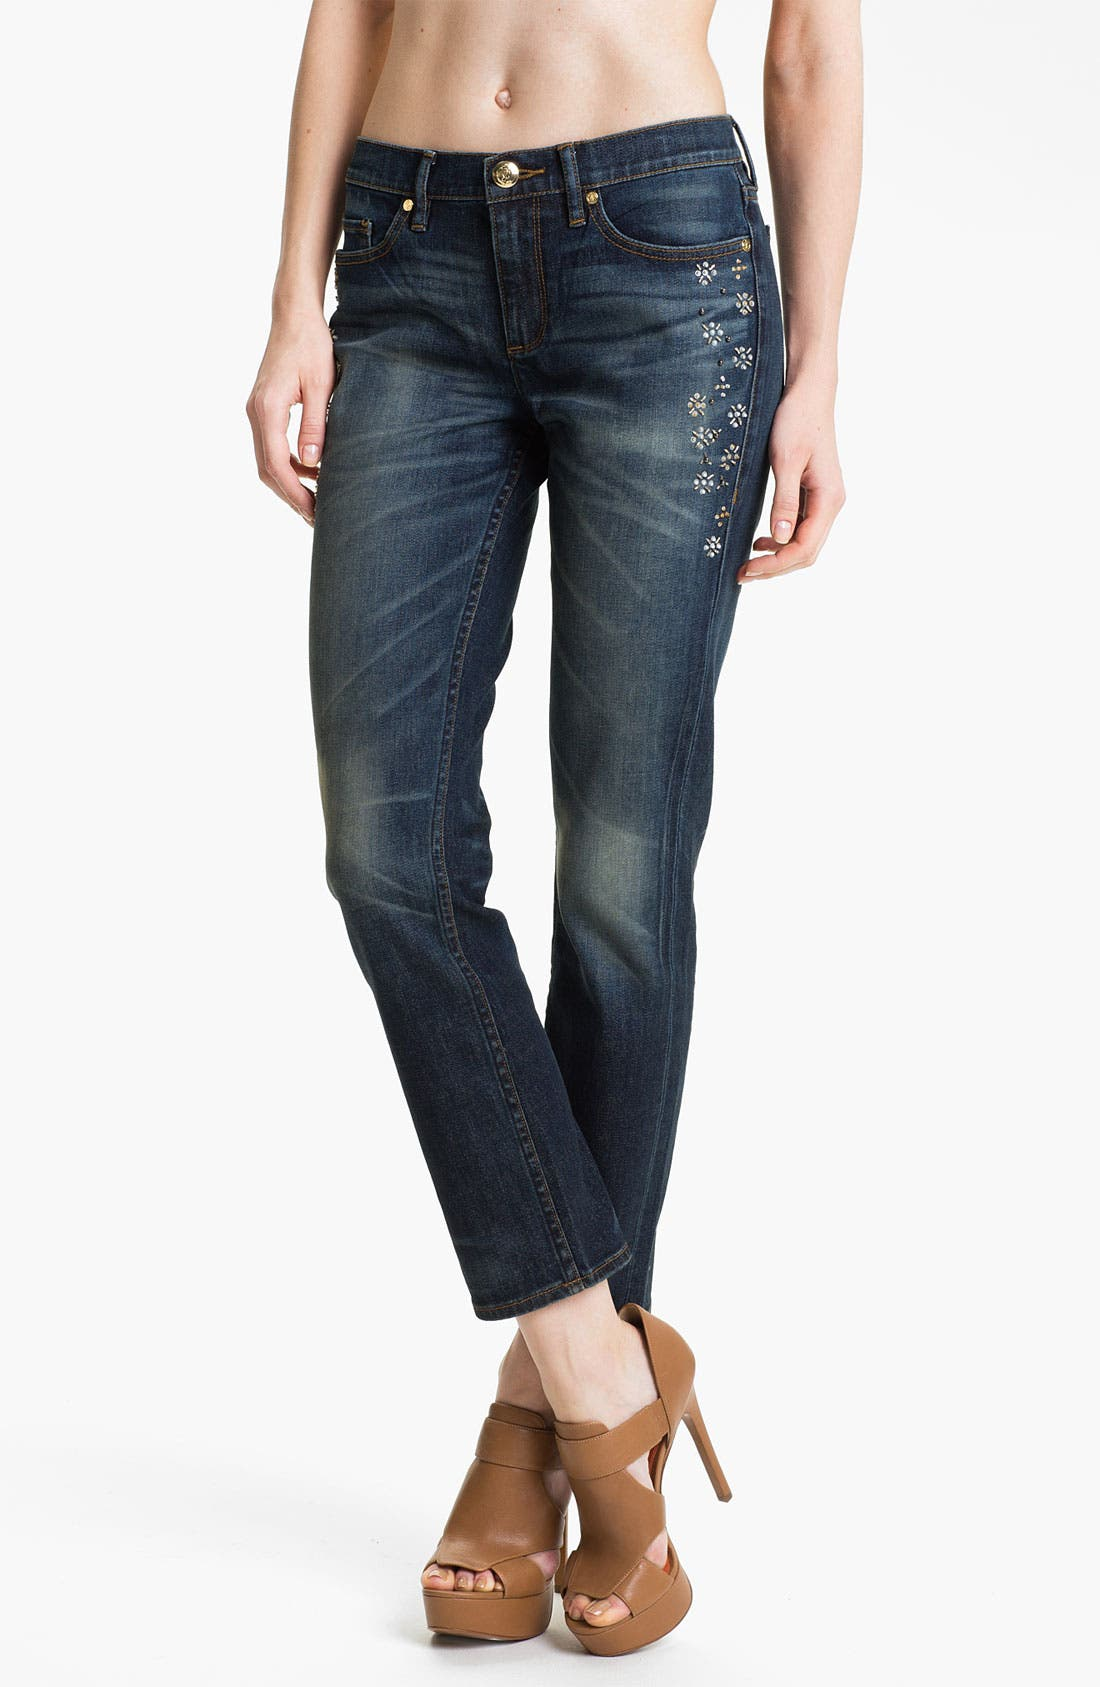 Alternate Image 1 Selected - Juicy Couture 'Straight Slouchy' Embellished Jeans (Bleeker)